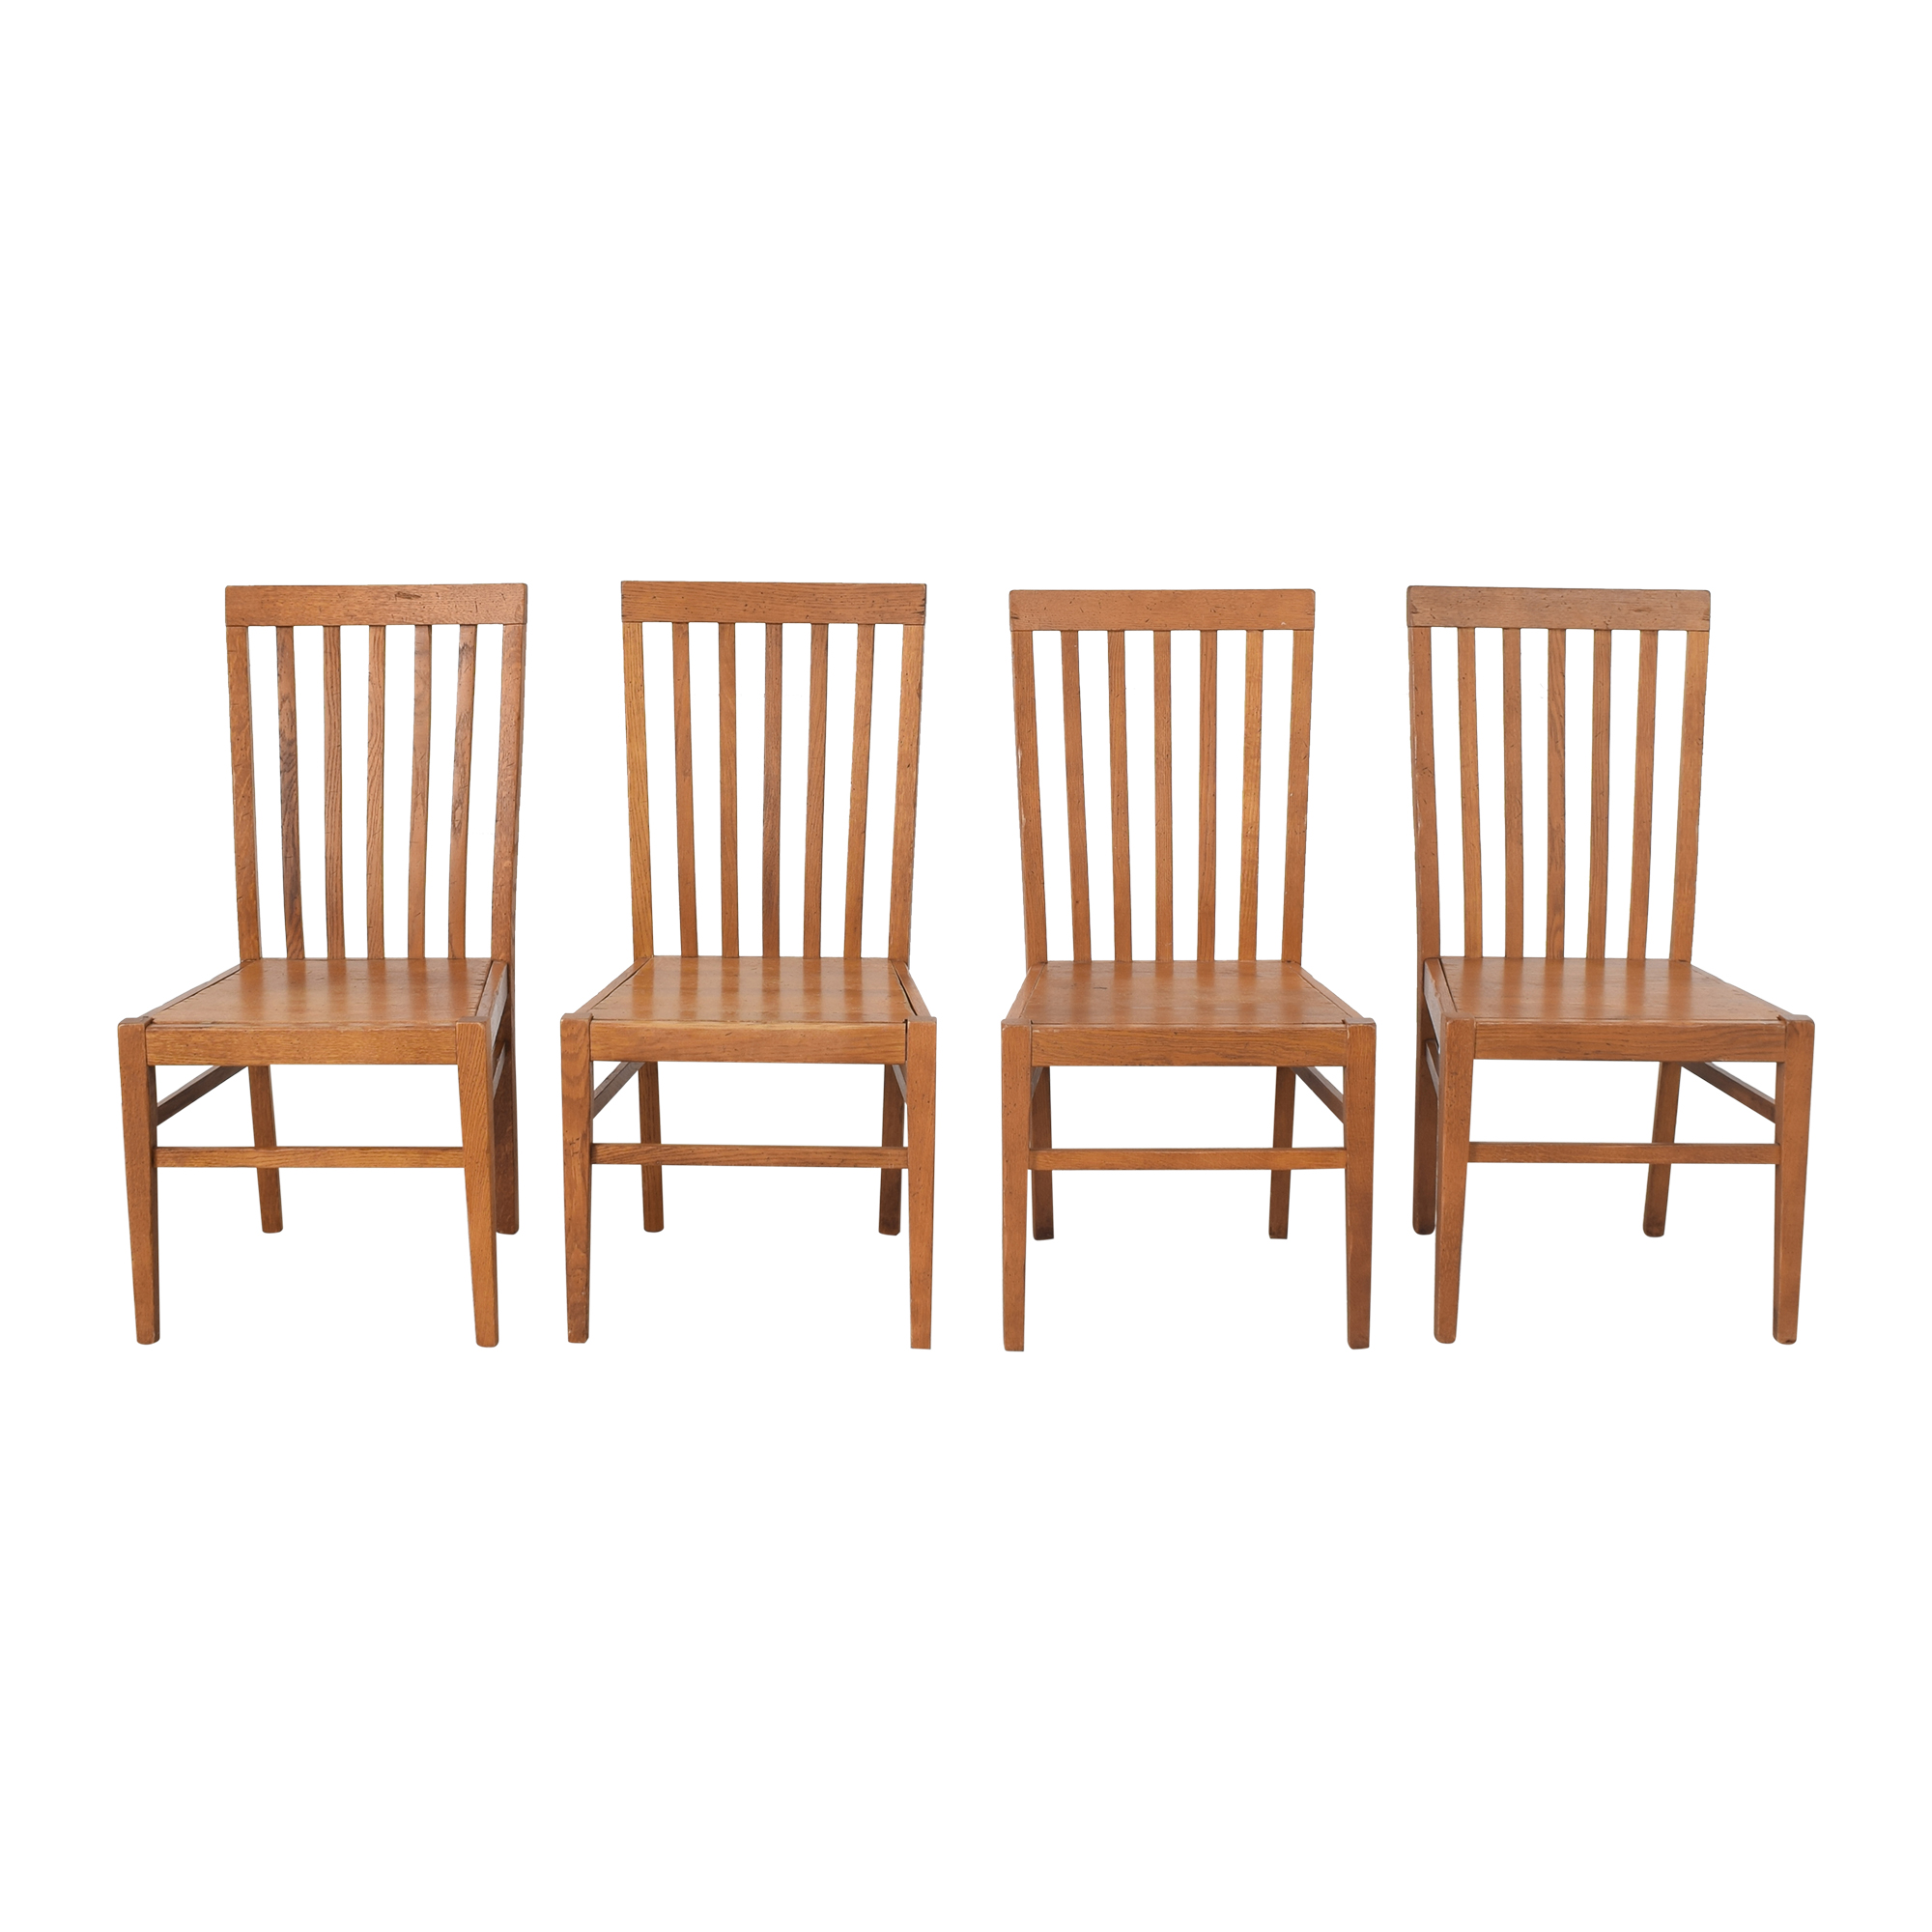 Crate & Barrel Crate & Barrel Slat Back Dining Chairs ct